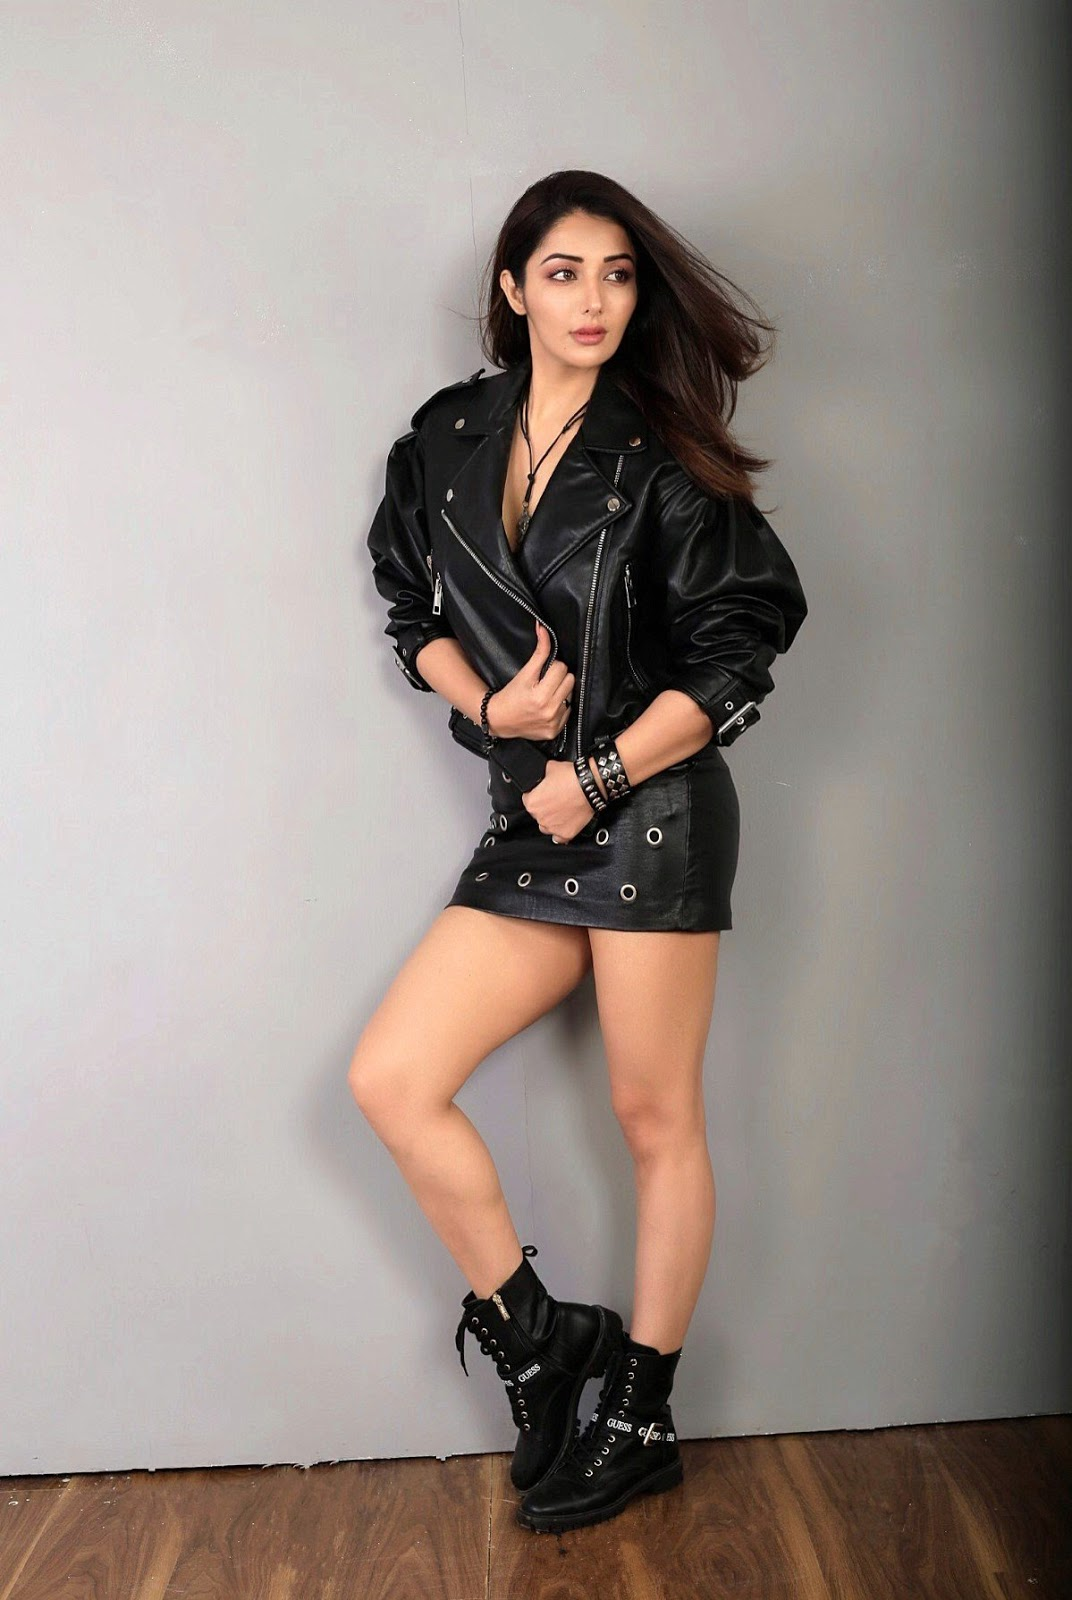 Sonia Mann Thunder Thigh Hot Photoshoot In Leather Dress ...